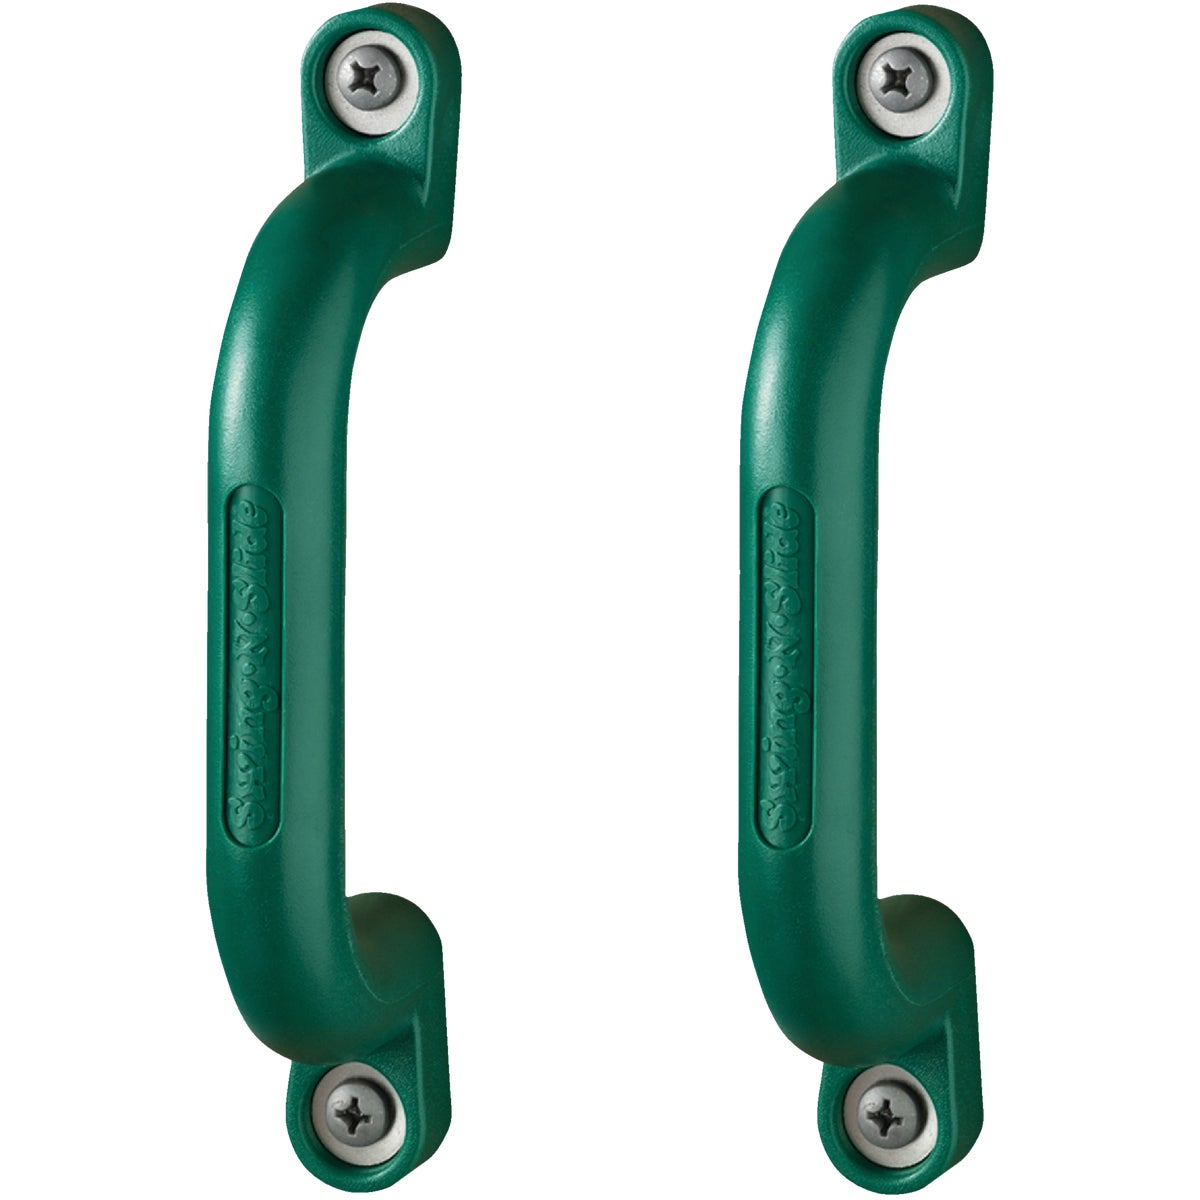 2PK GREEN SAFETY HANDLE - NE4410 by Swing N Slide Corp